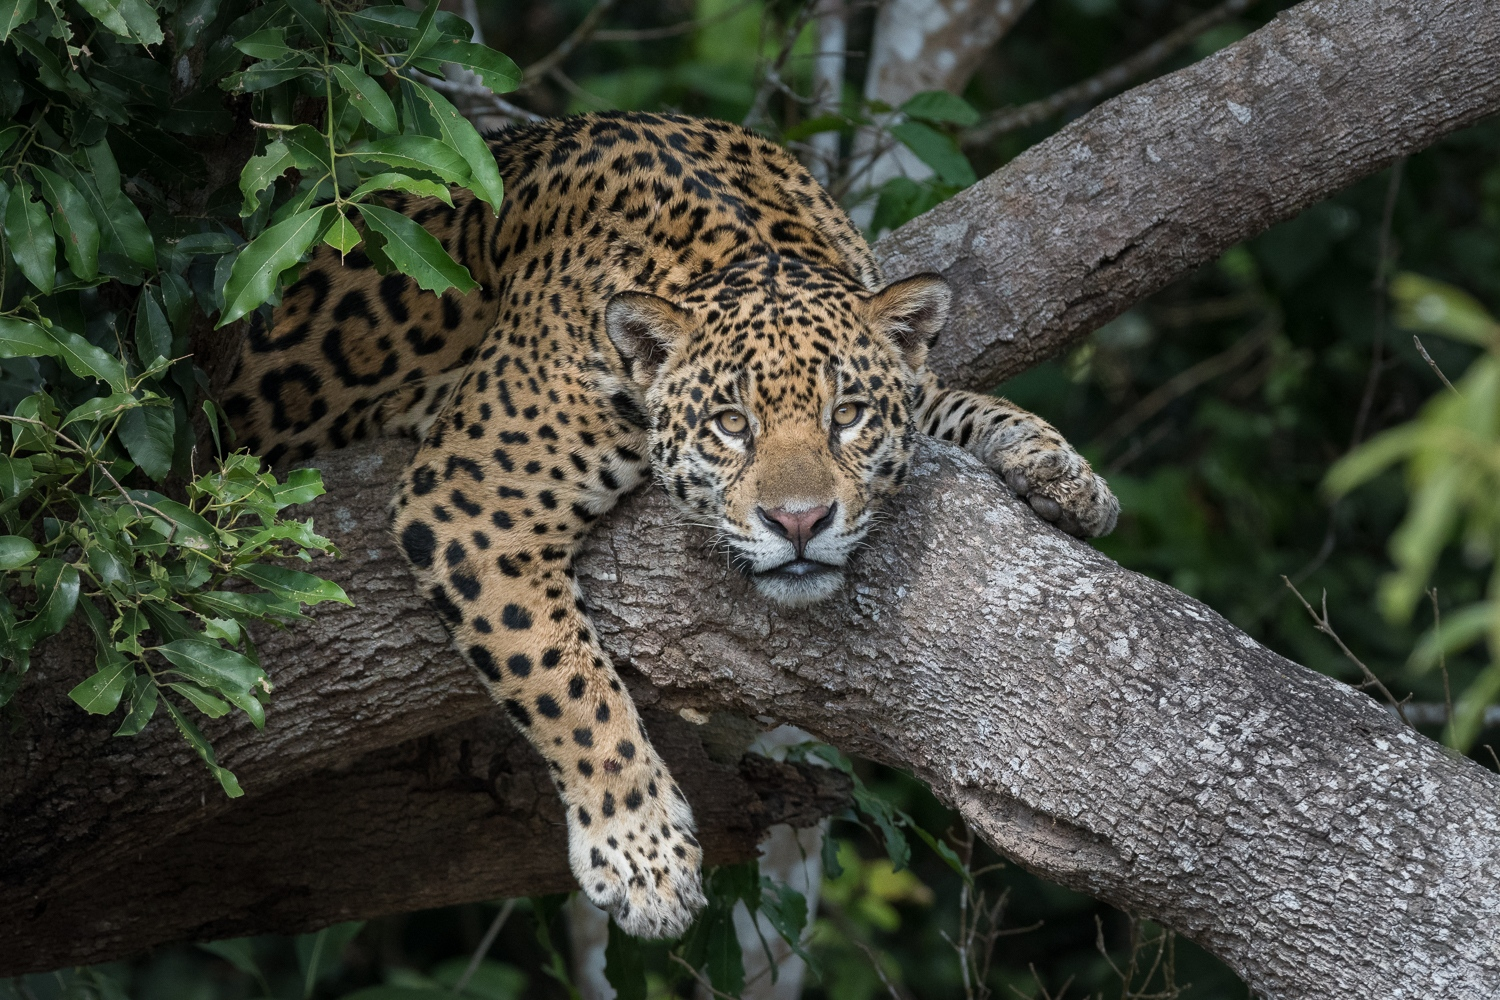 Jaguar in tree, Pantanal, Brazil.